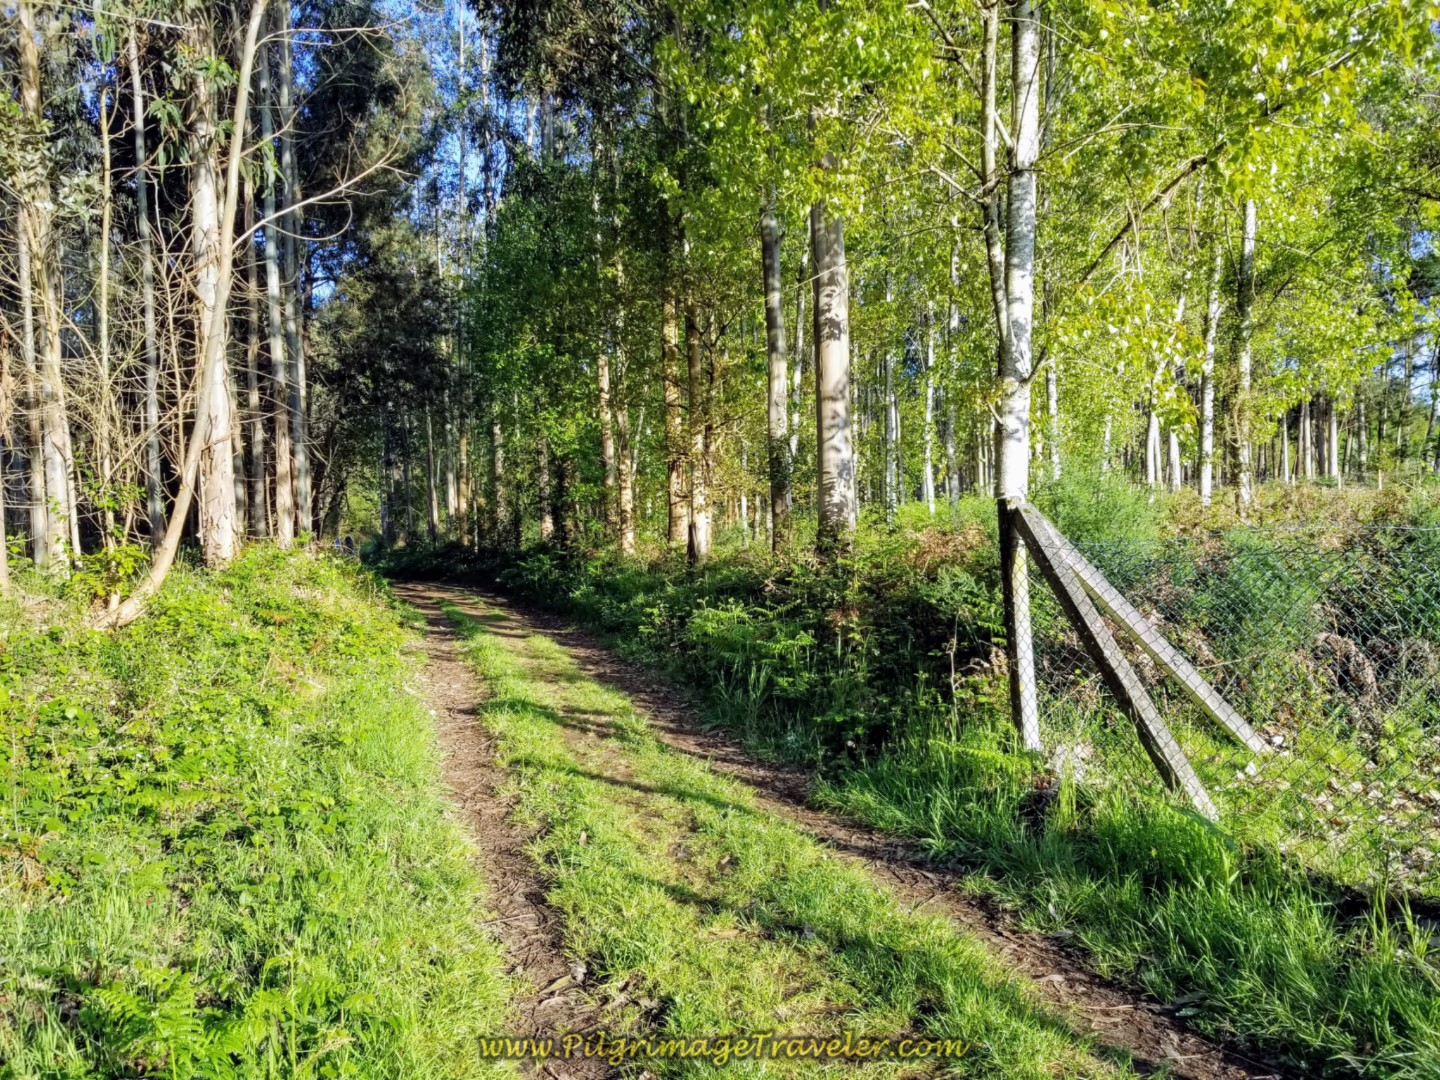 Quaint and Quiet Two-Track Forest Lane on day six of the Camino Inglés